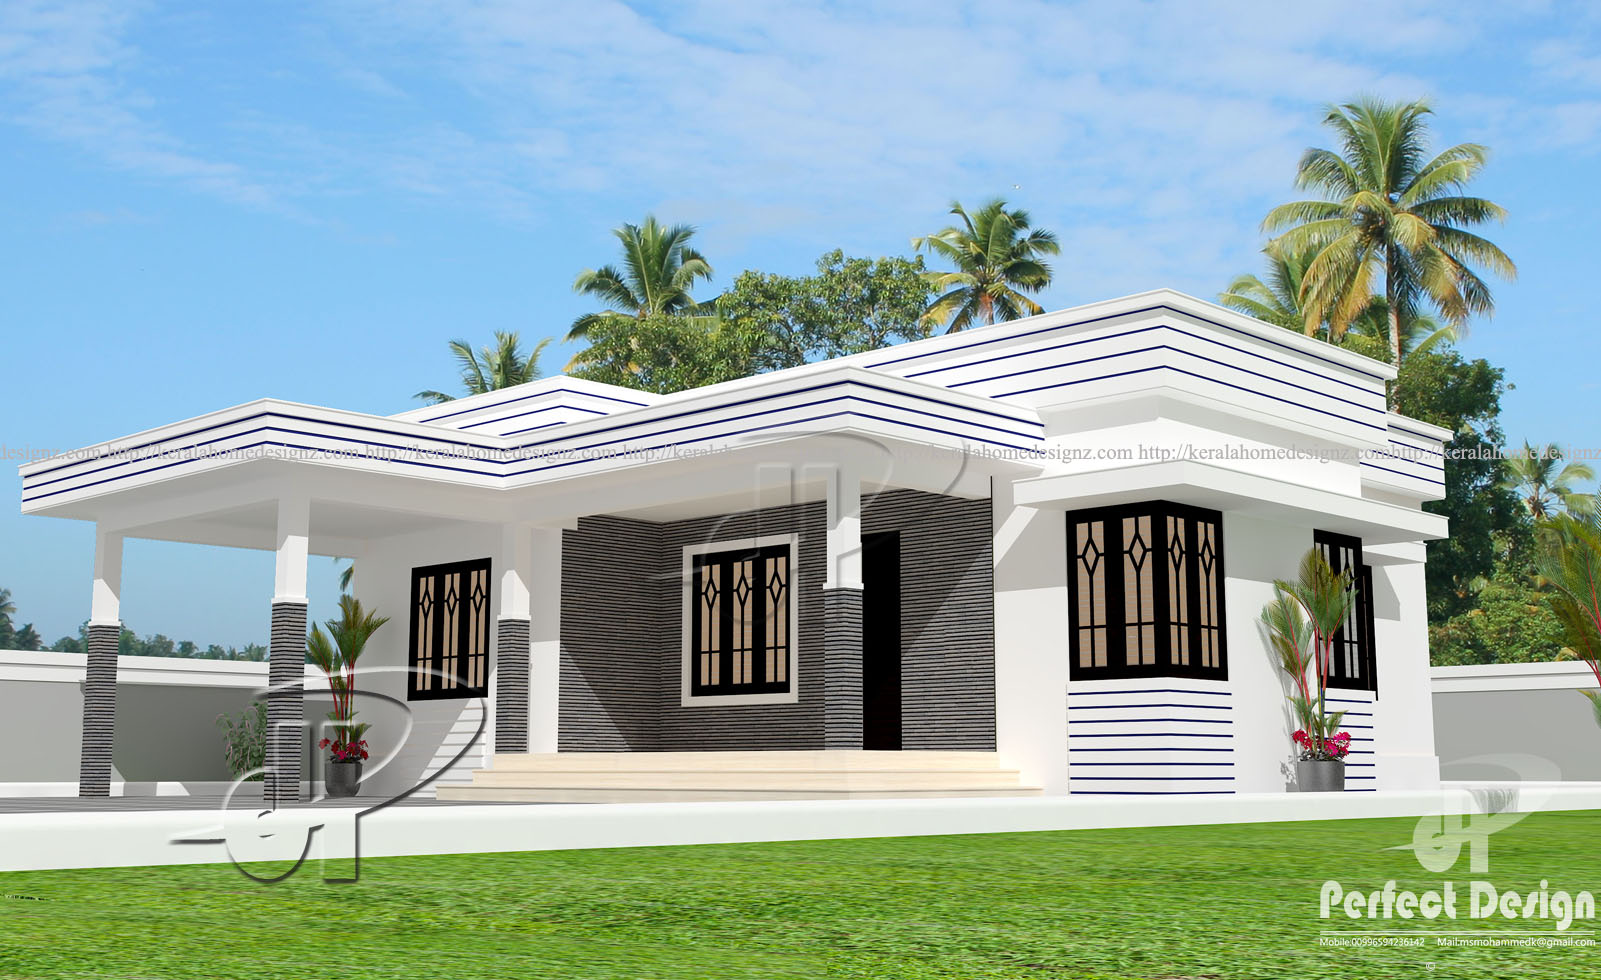 925 SQFT MODERN HOME DESIGN Kerala Home Design